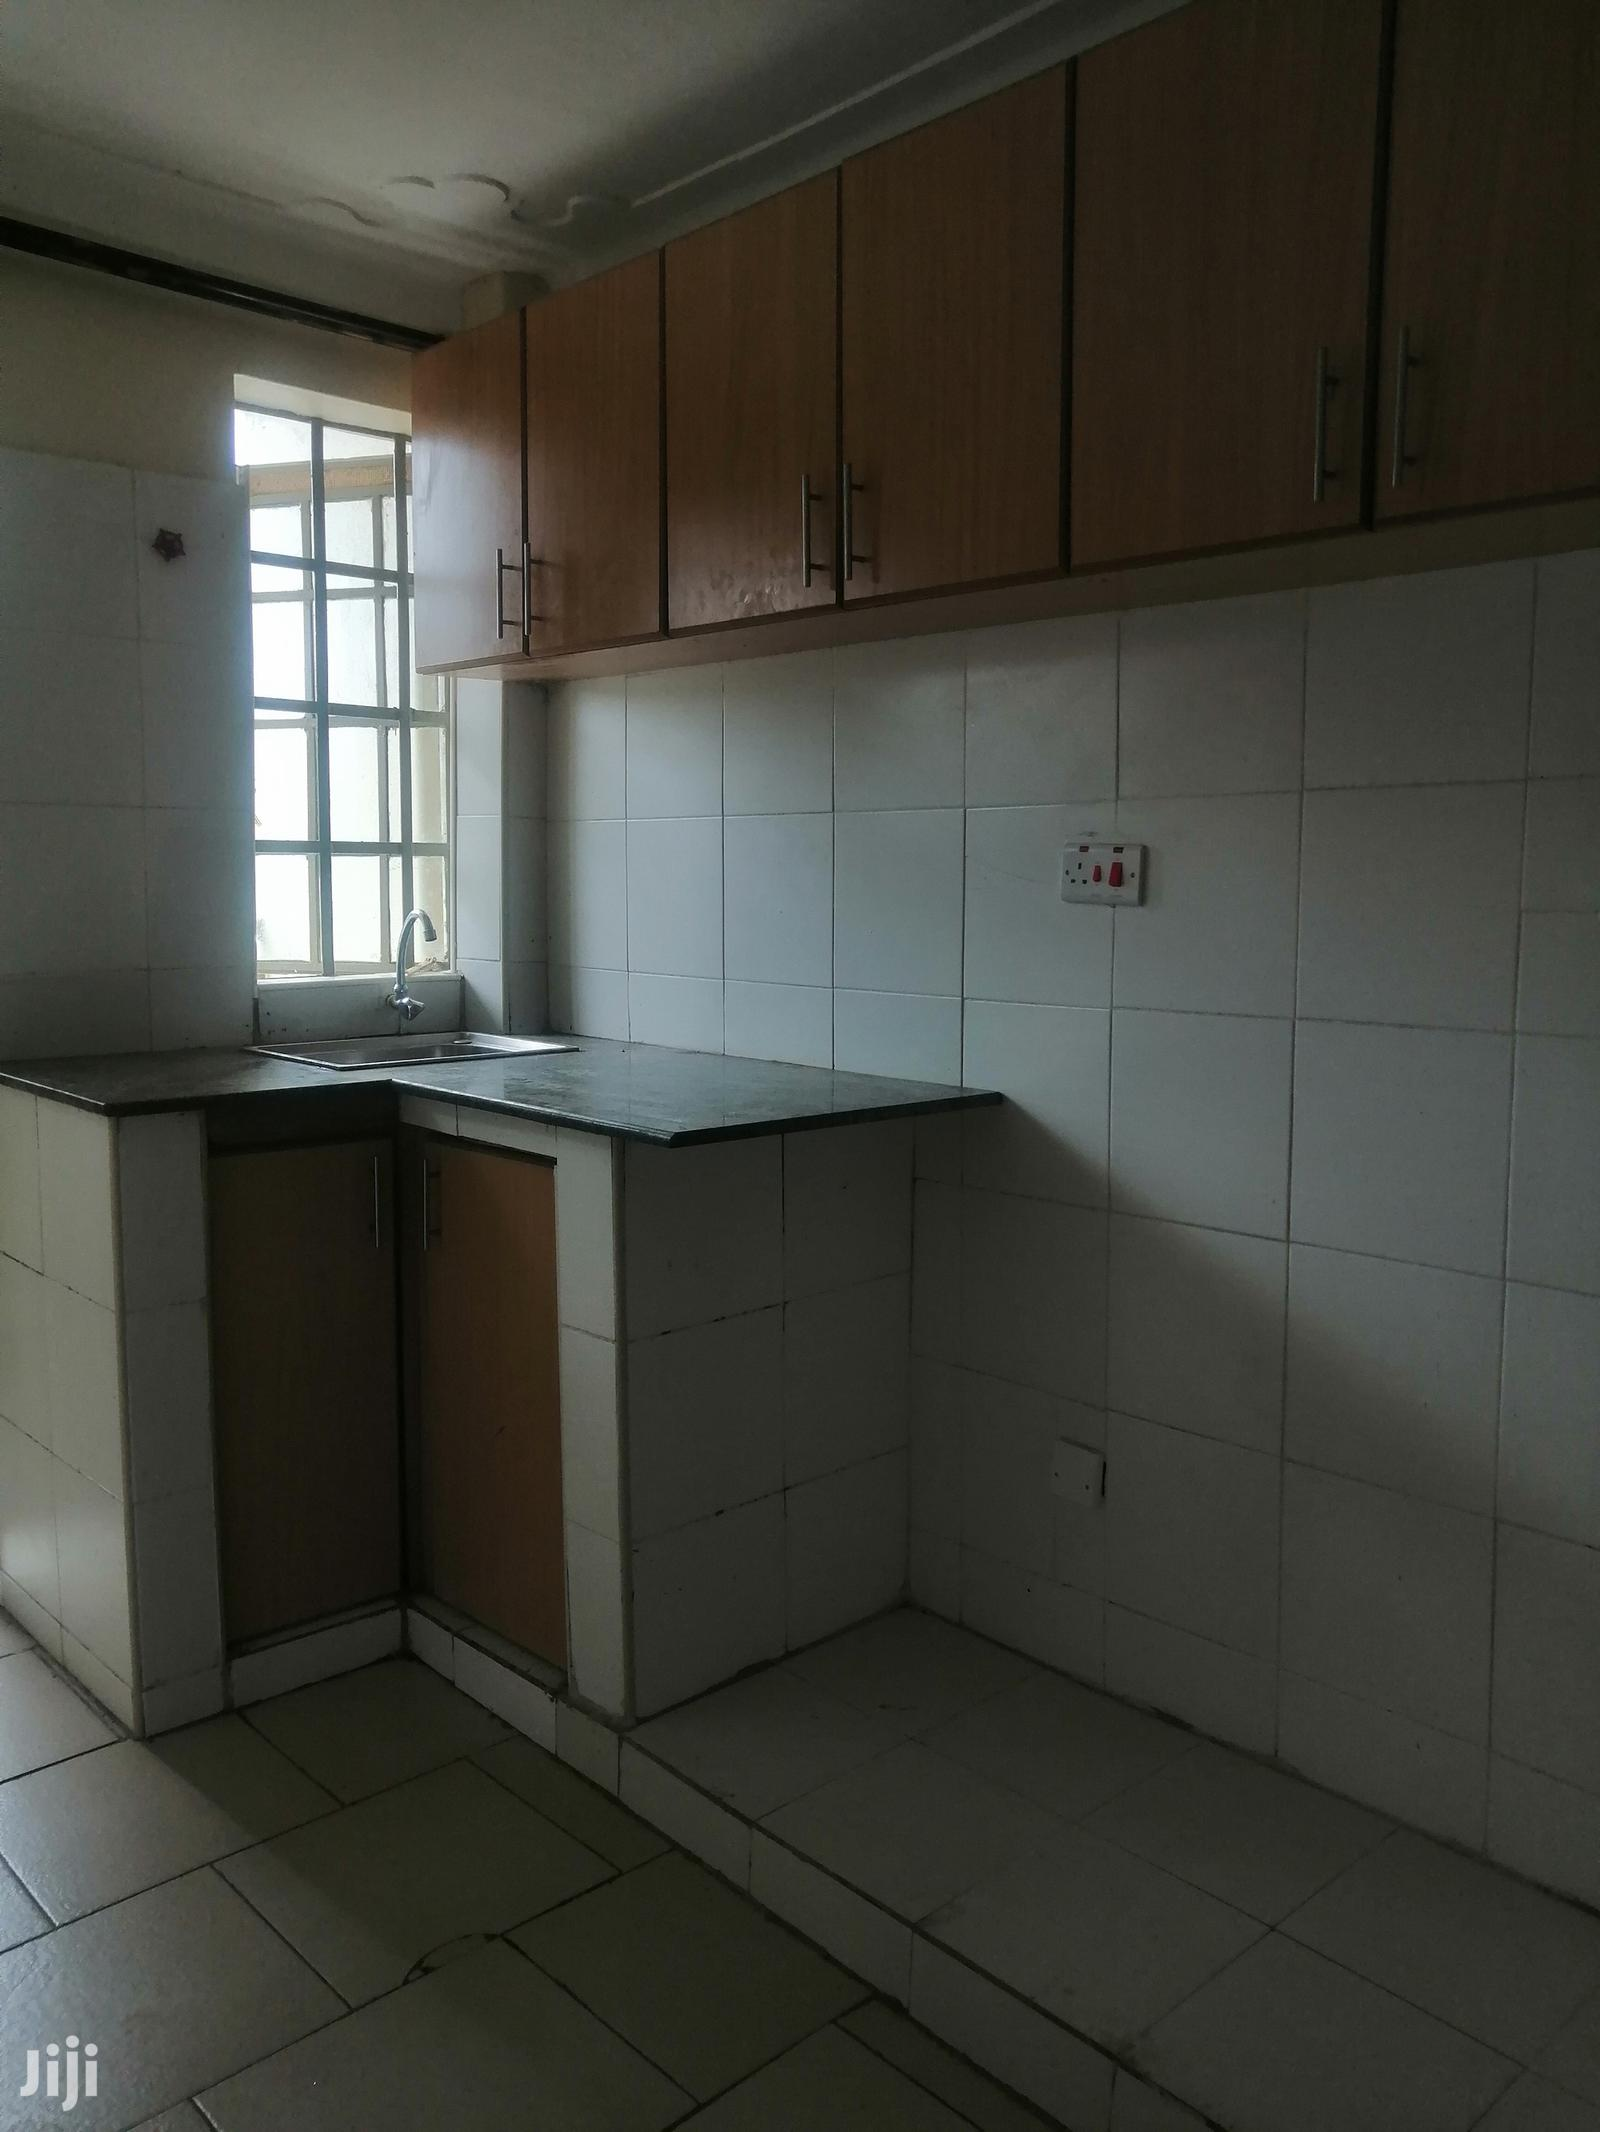 Archive: 2 Bedroom Apartment for Let Laserhill